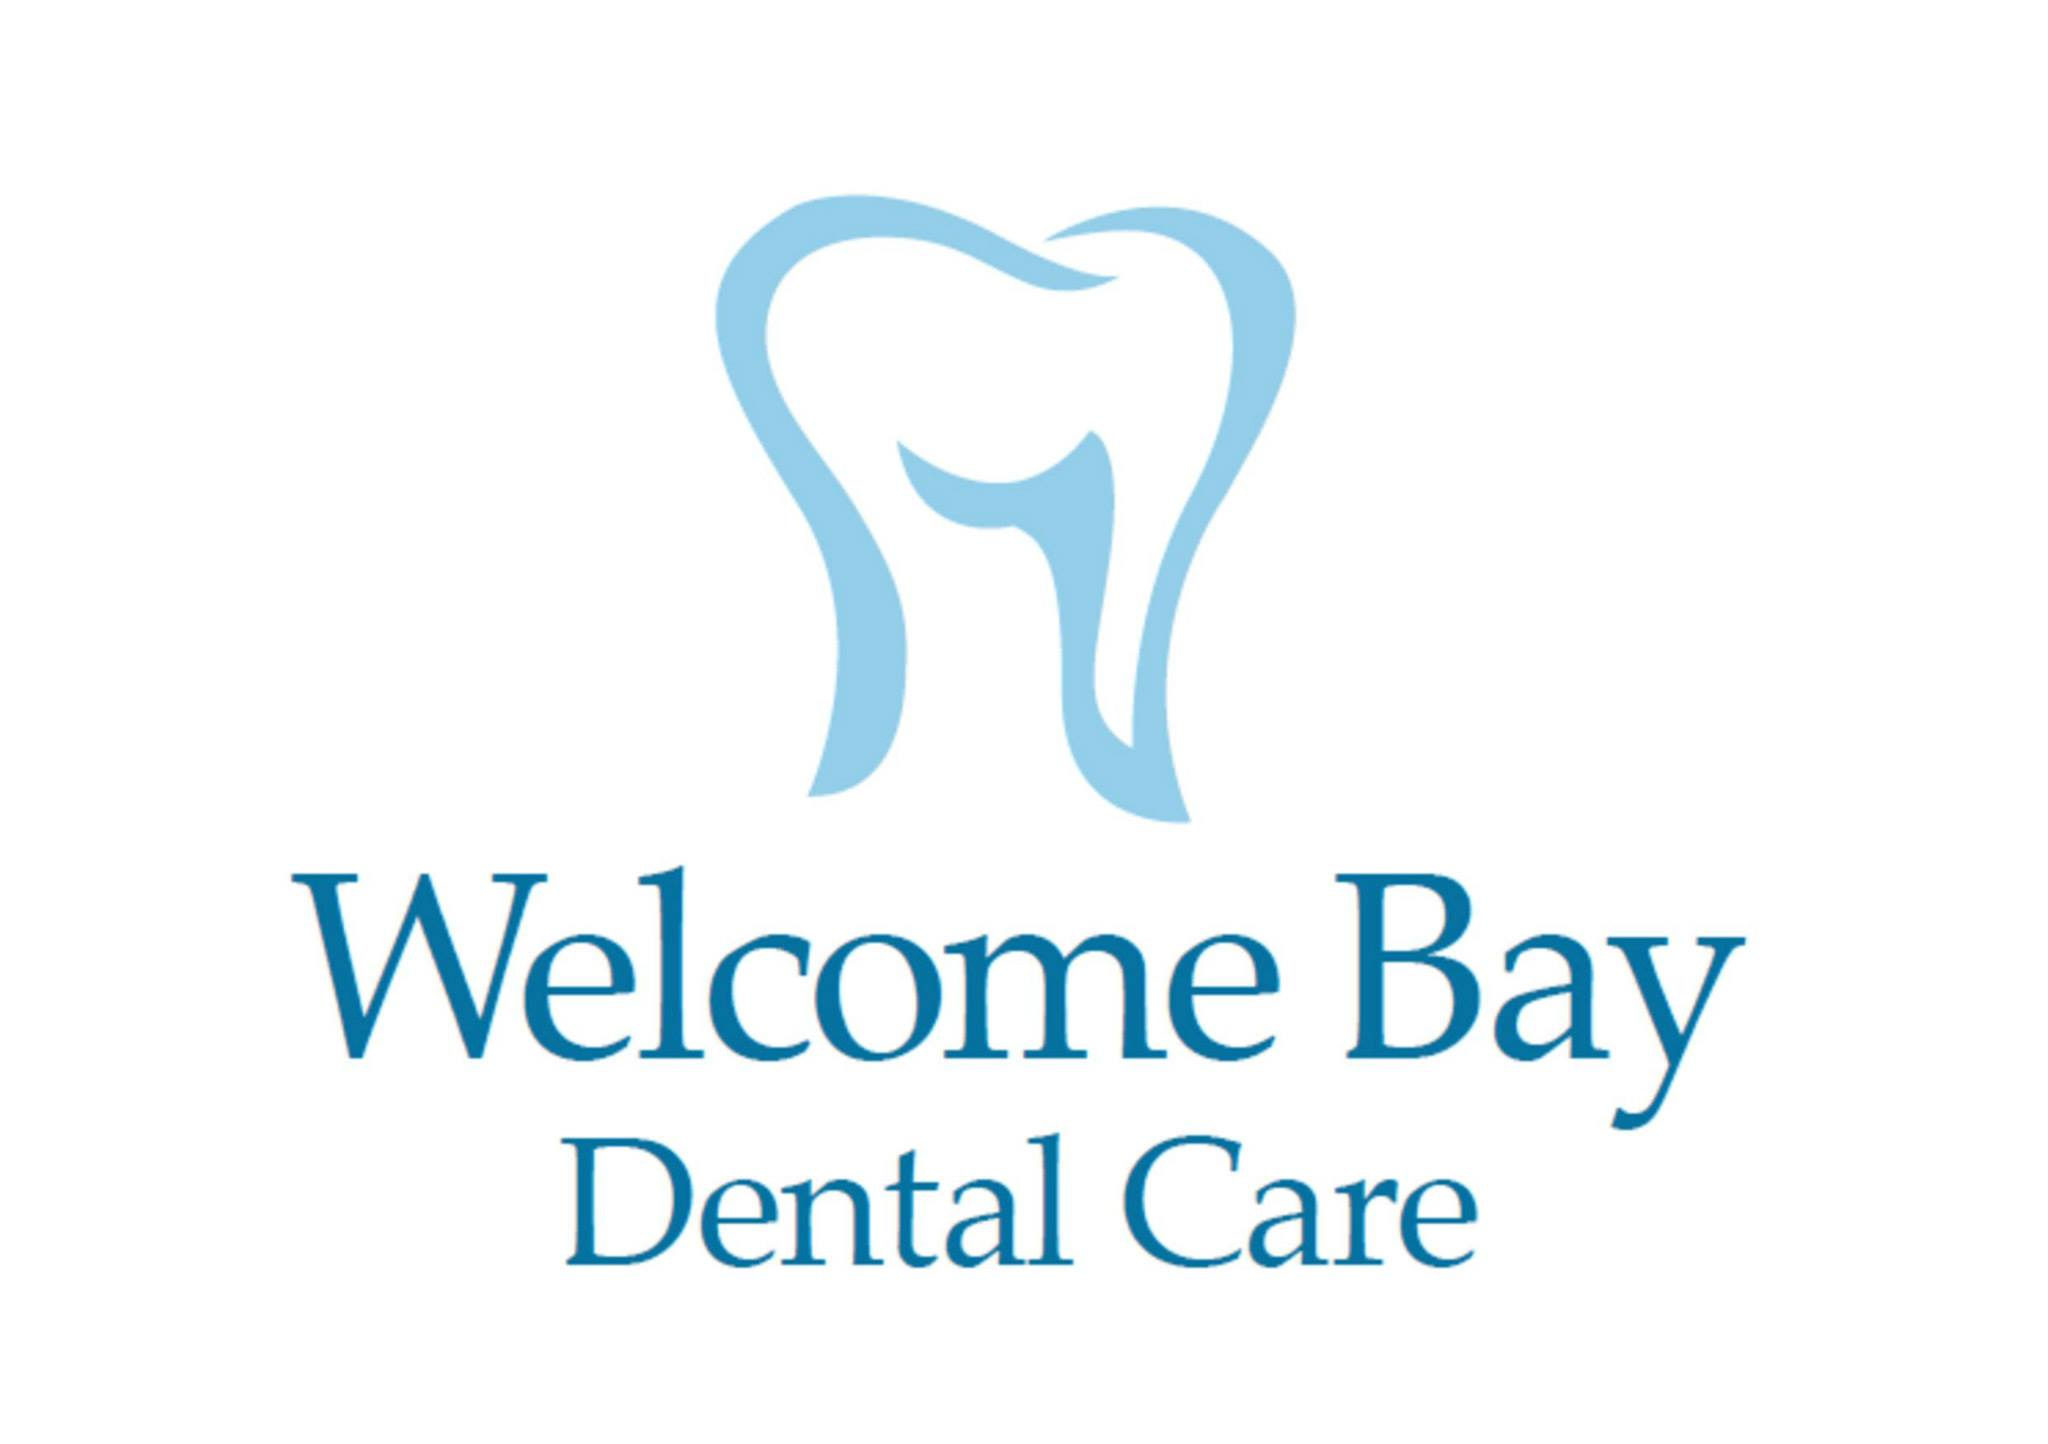 Welcome Bay Dental Care